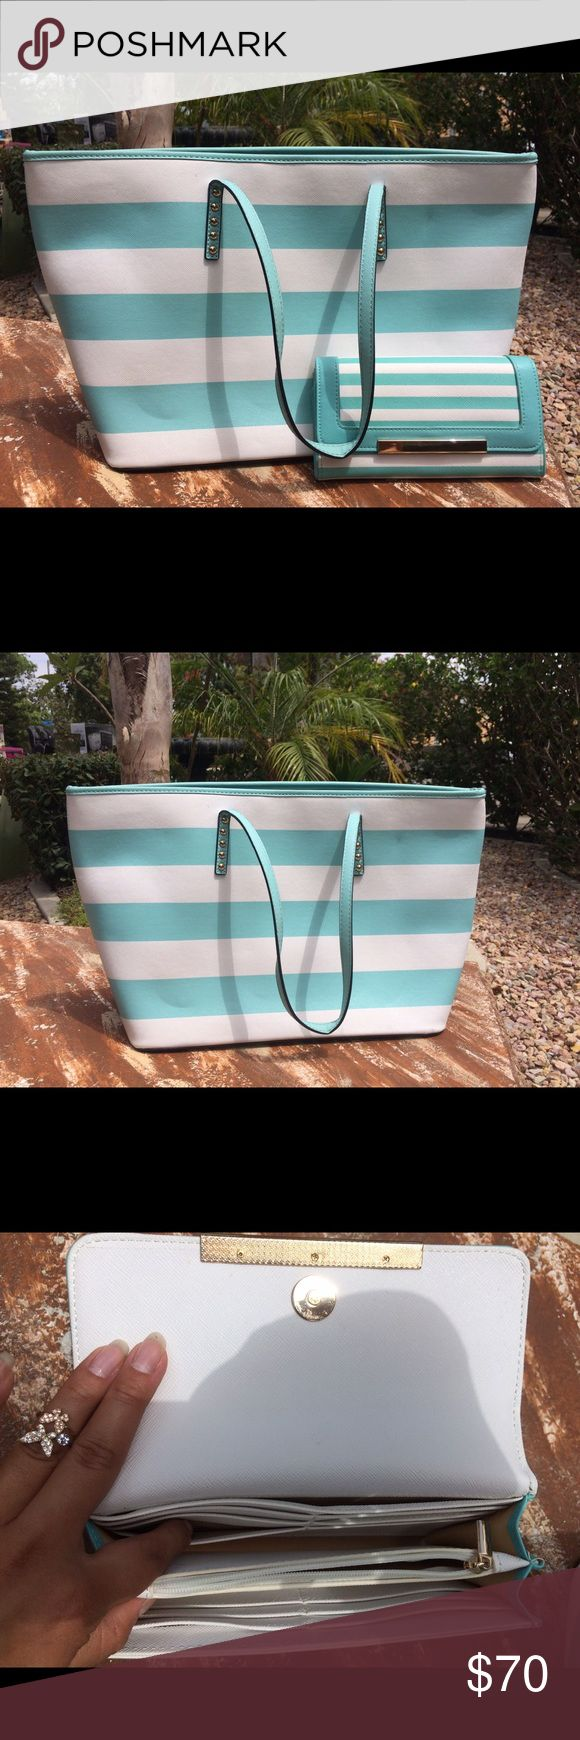 Aldo tote & matching wallet Like new, (Tiffany and co color) stripe tote bag. Both the wallet and purse are in great condition! Aldo Bags Totes